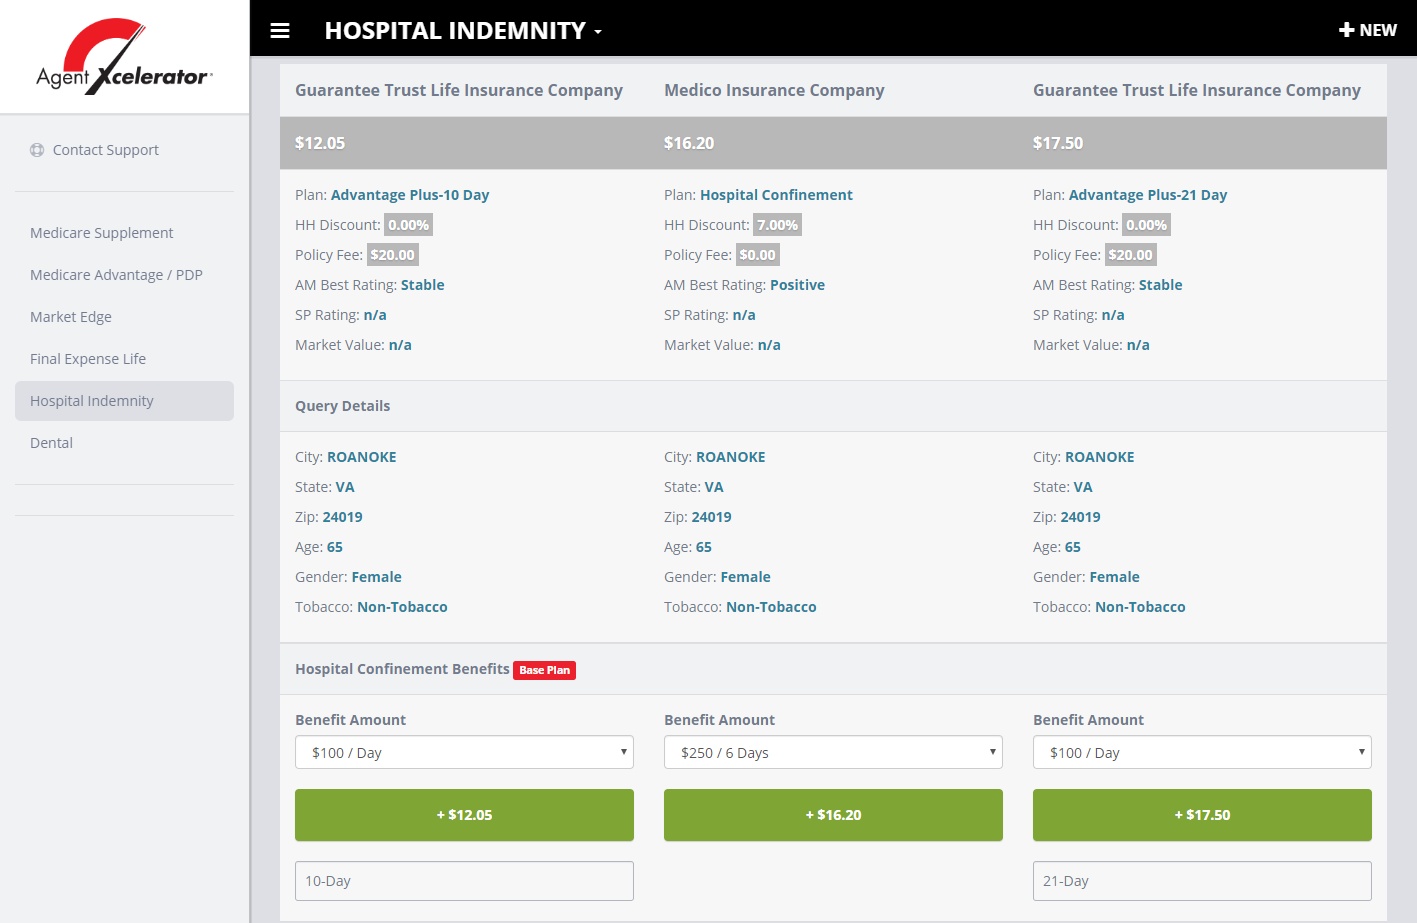 Hospital Indemnity Quoting Tool and Compare